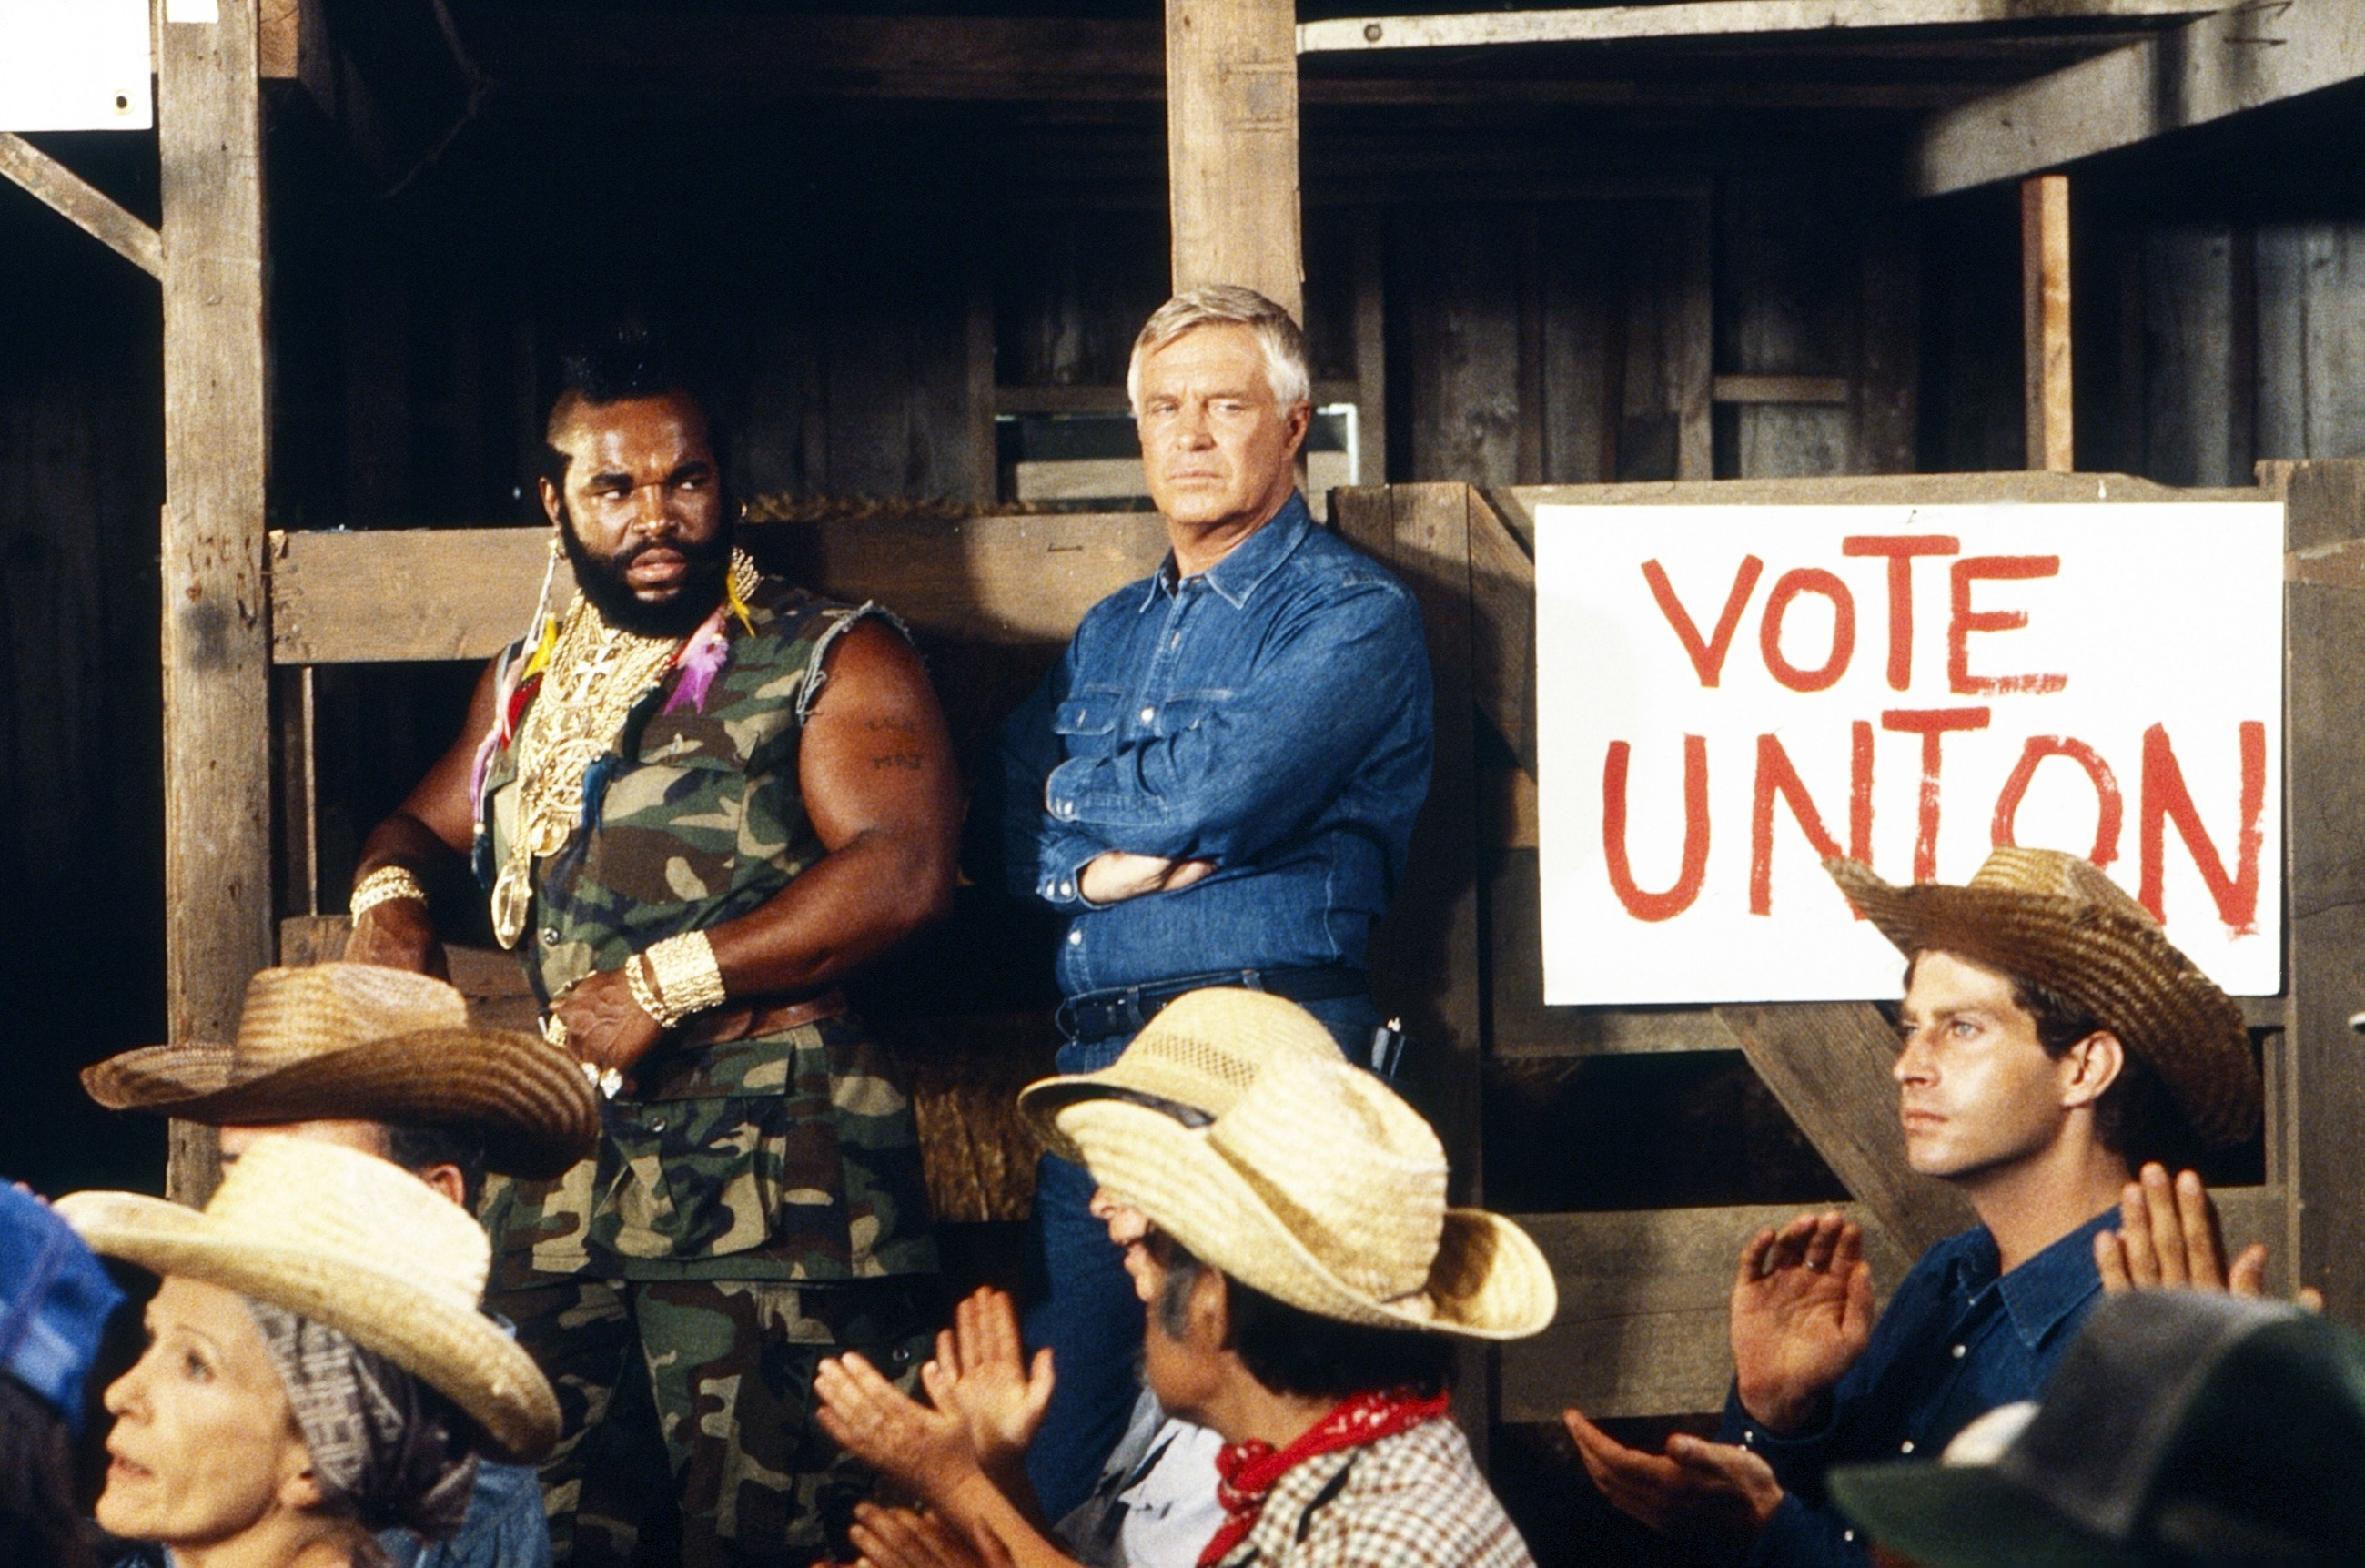 Mr. T and George Peppard eye a room full of cowboys